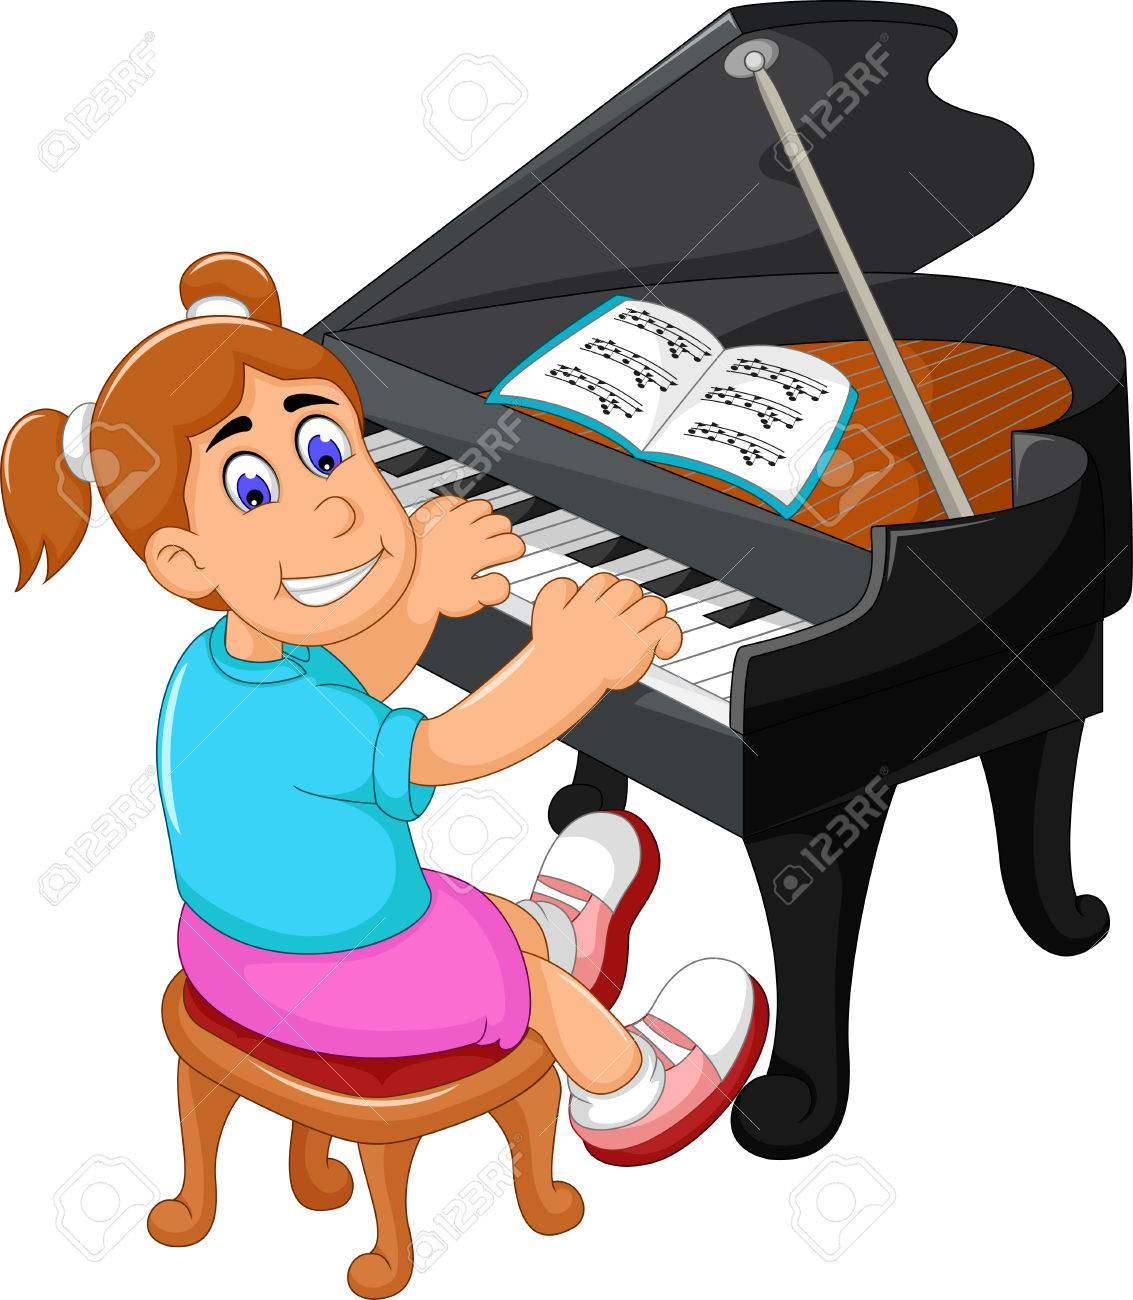 Playing piano clipart free download Play piano clipart 4 » Clipart Station free download